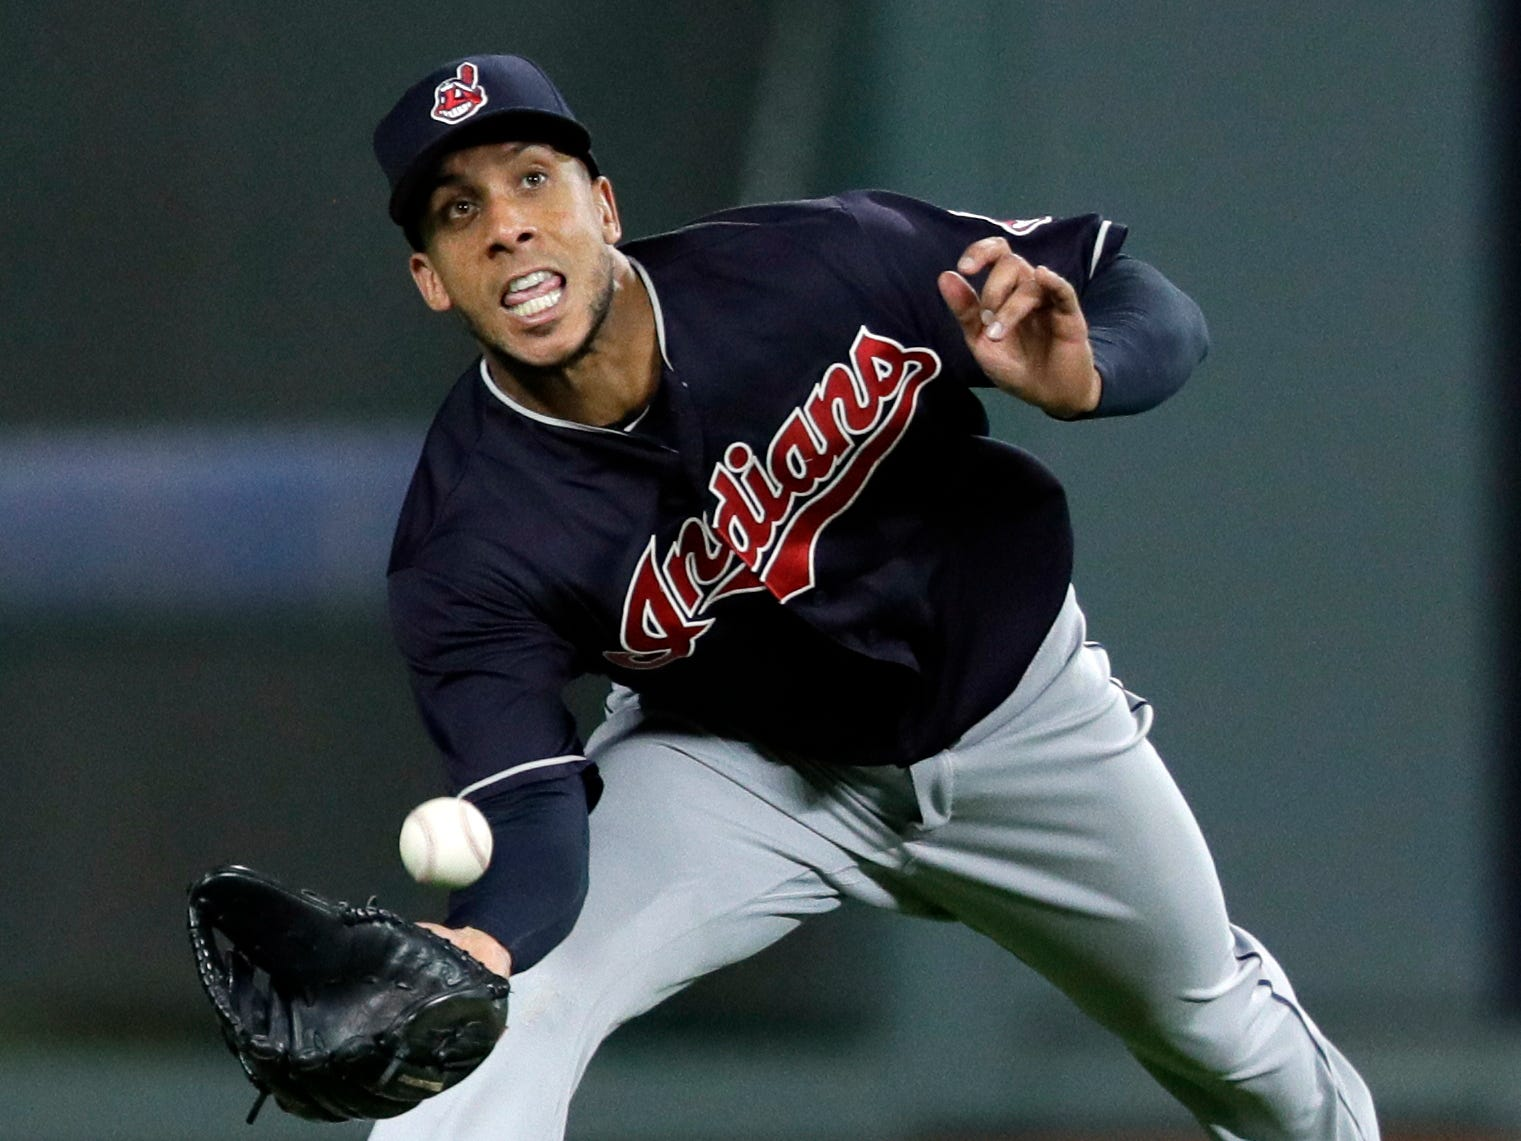 5. Michael Brantley, 32: After frustrating injury-plagued seasons in 2016 and 2017, he was back to his dynamic self this past season, as a doubles machine. His last fully healthy season, he played some center field, but he's just a left fielder these days. Prediction: Mariners, four years, $60 million